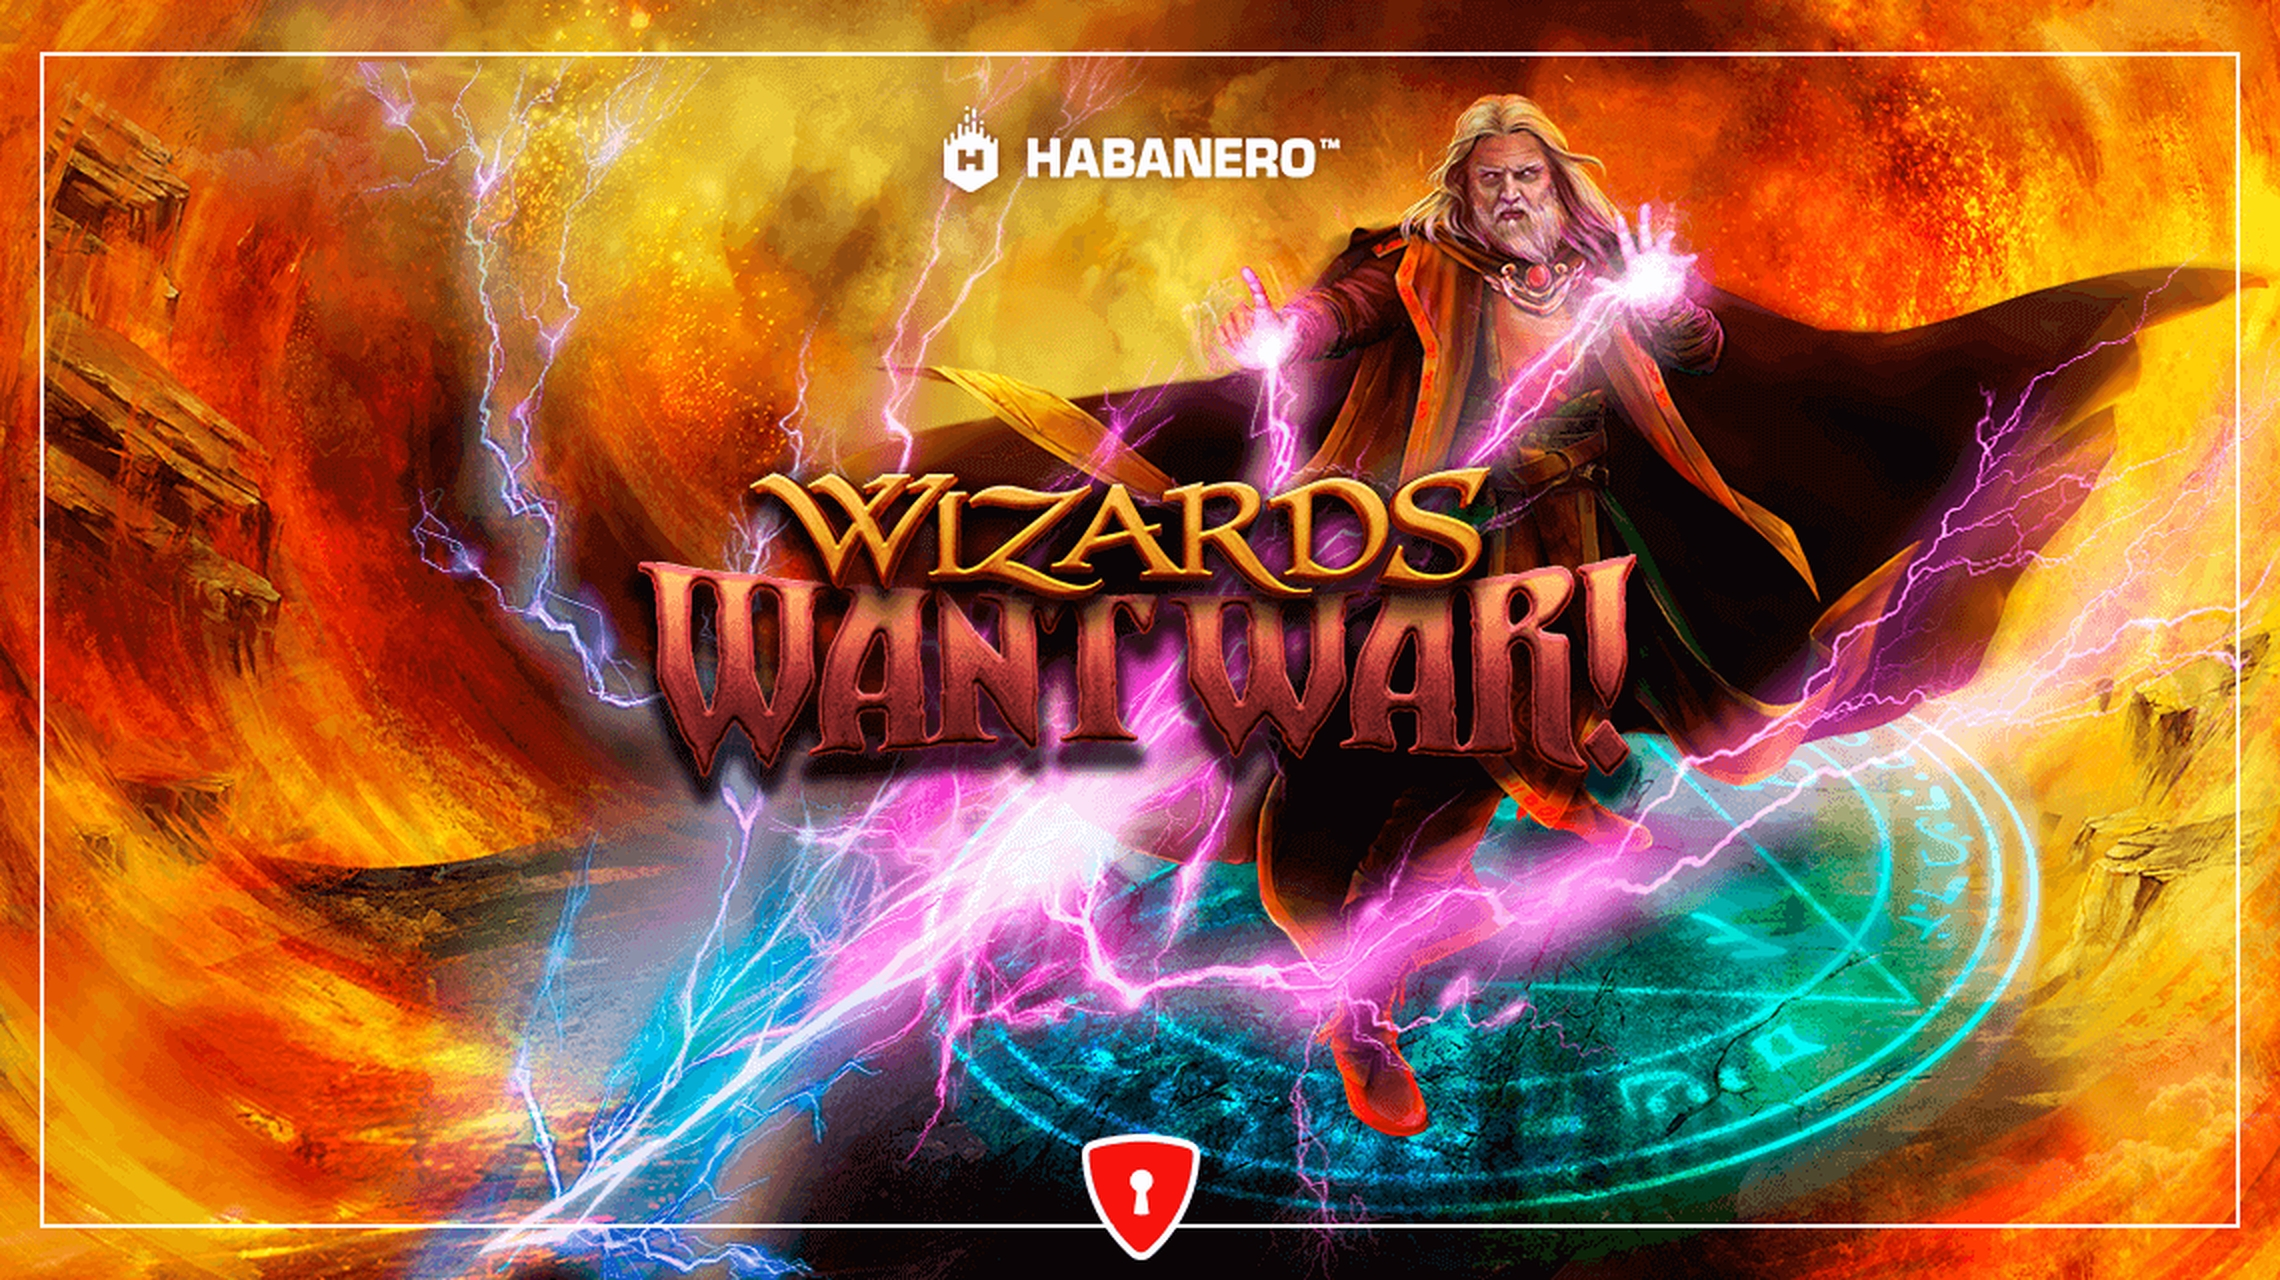 Wizards Want War Online Slot Demo Game by Habanero